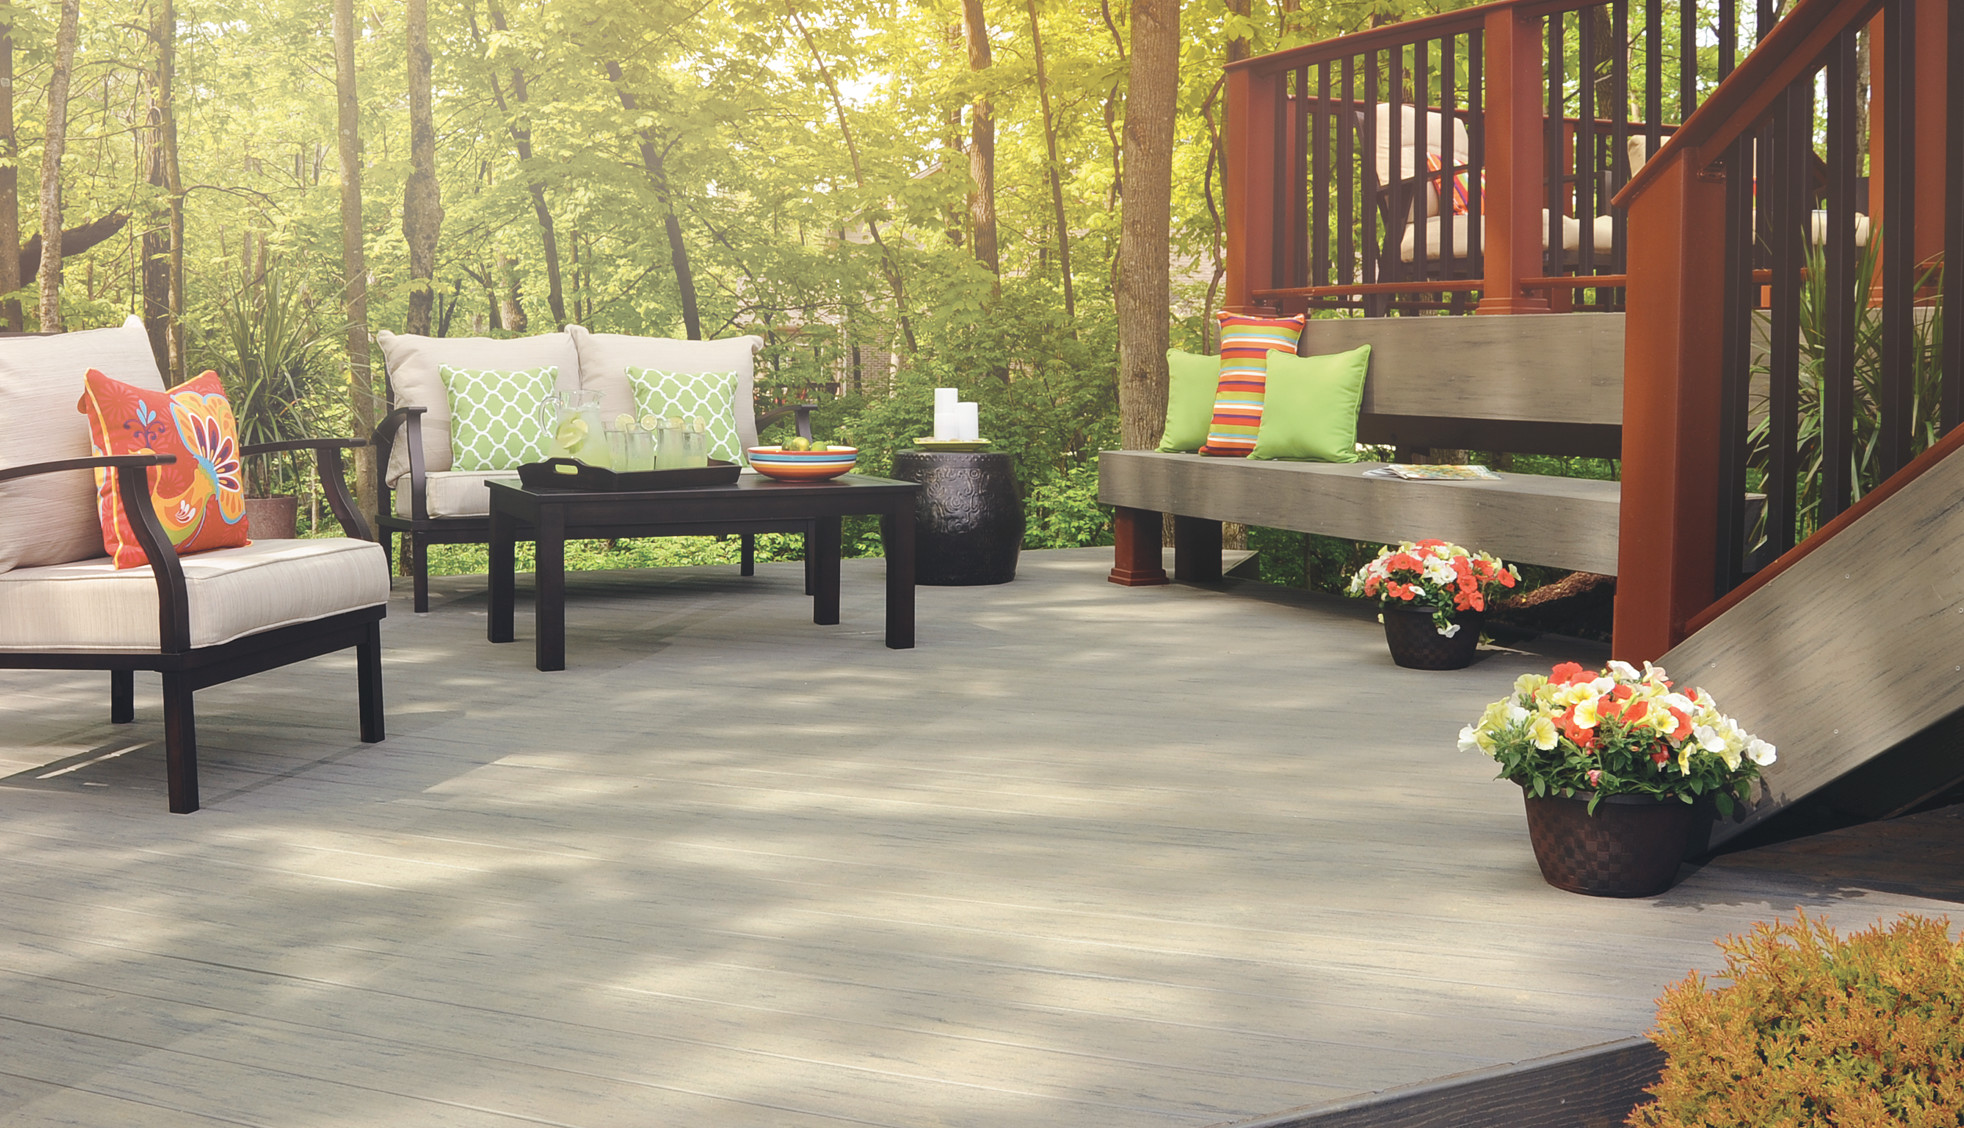 ADTG-TimberTech Terrain Decking Collection in Silver Maple